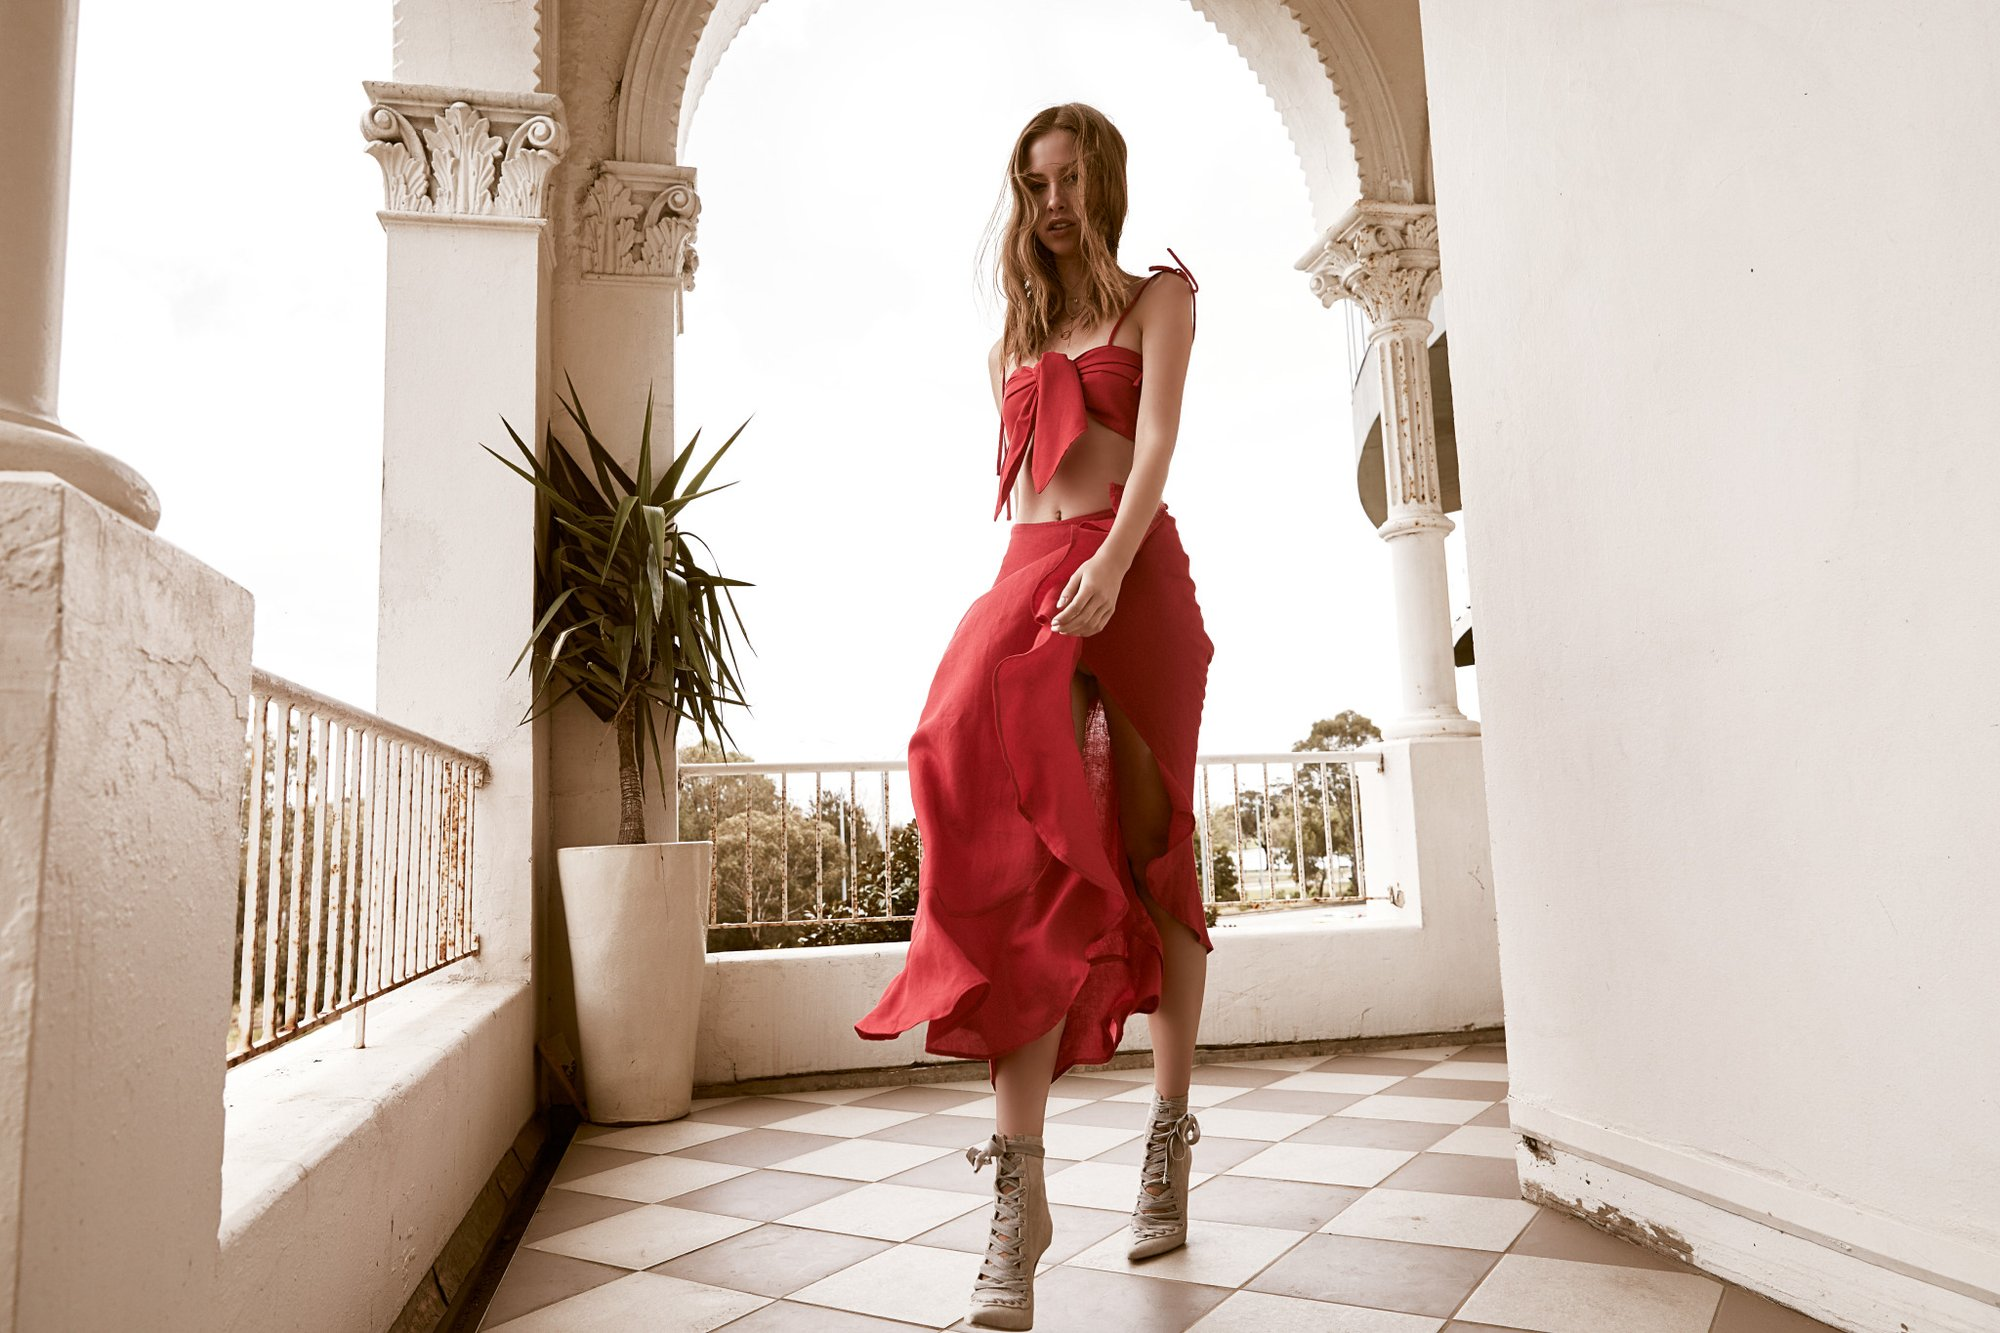 Sofia_thelabel15547_copy_preview_2000x.jpg